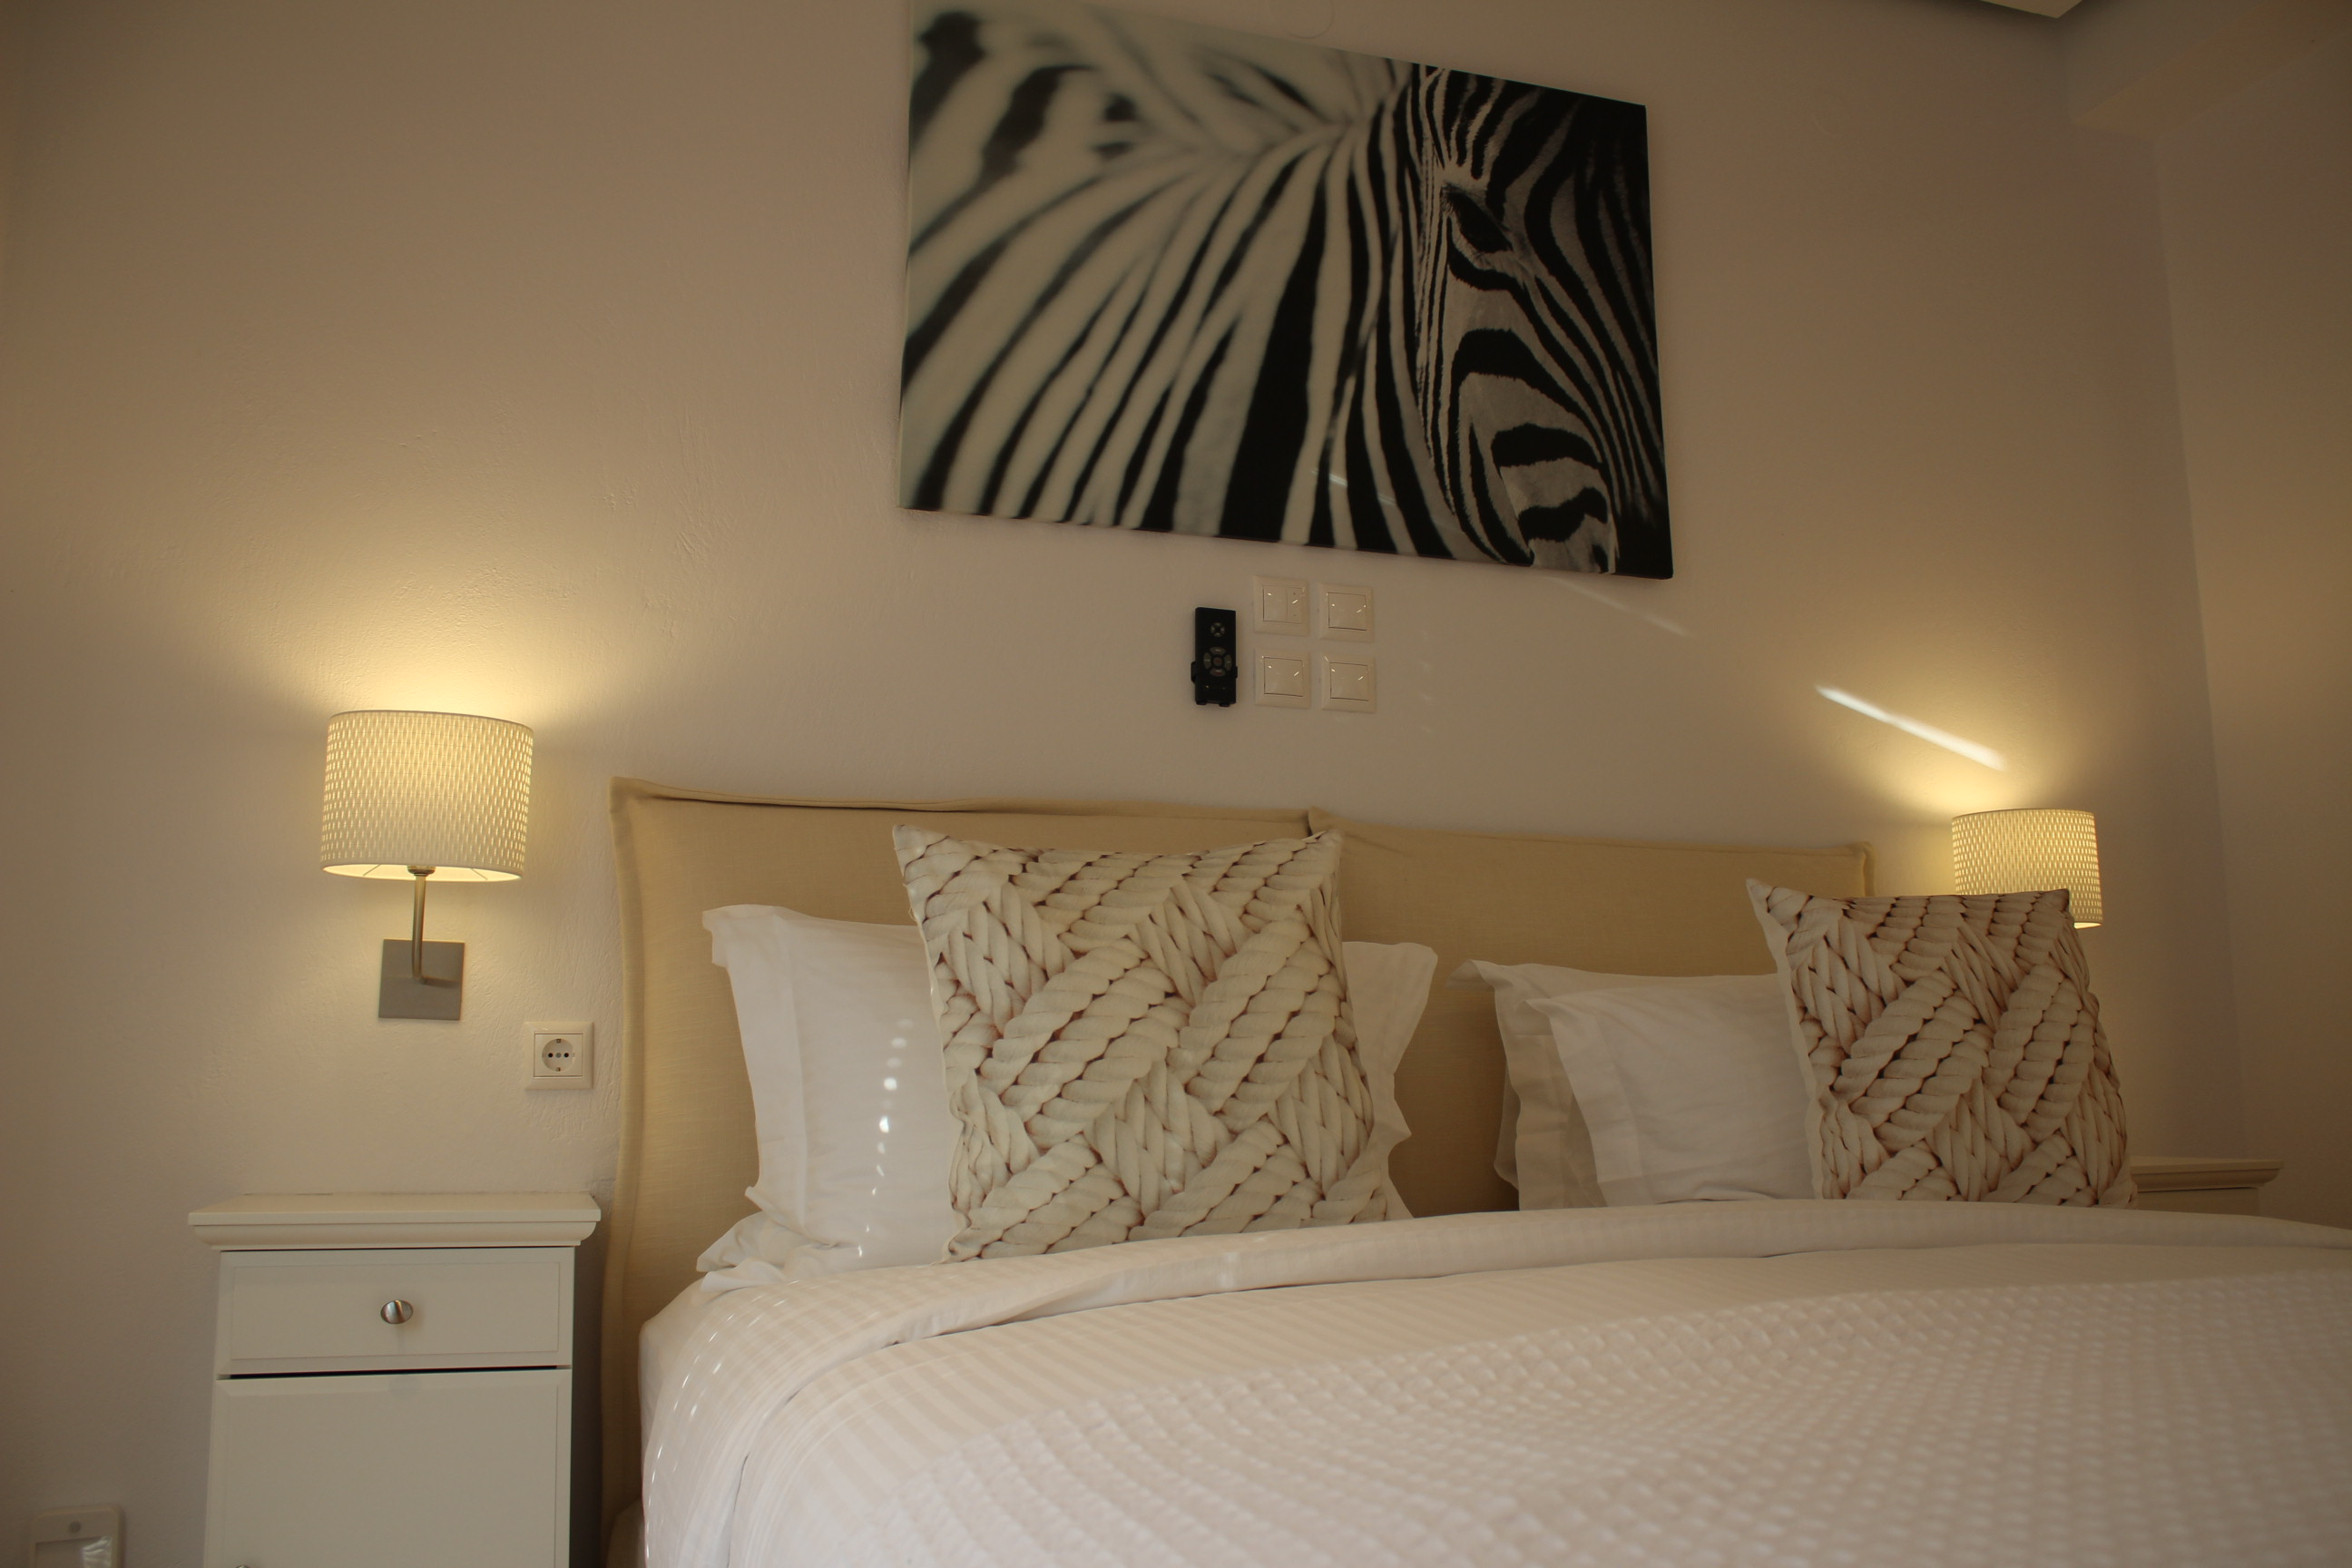 Zebra picture above the bed